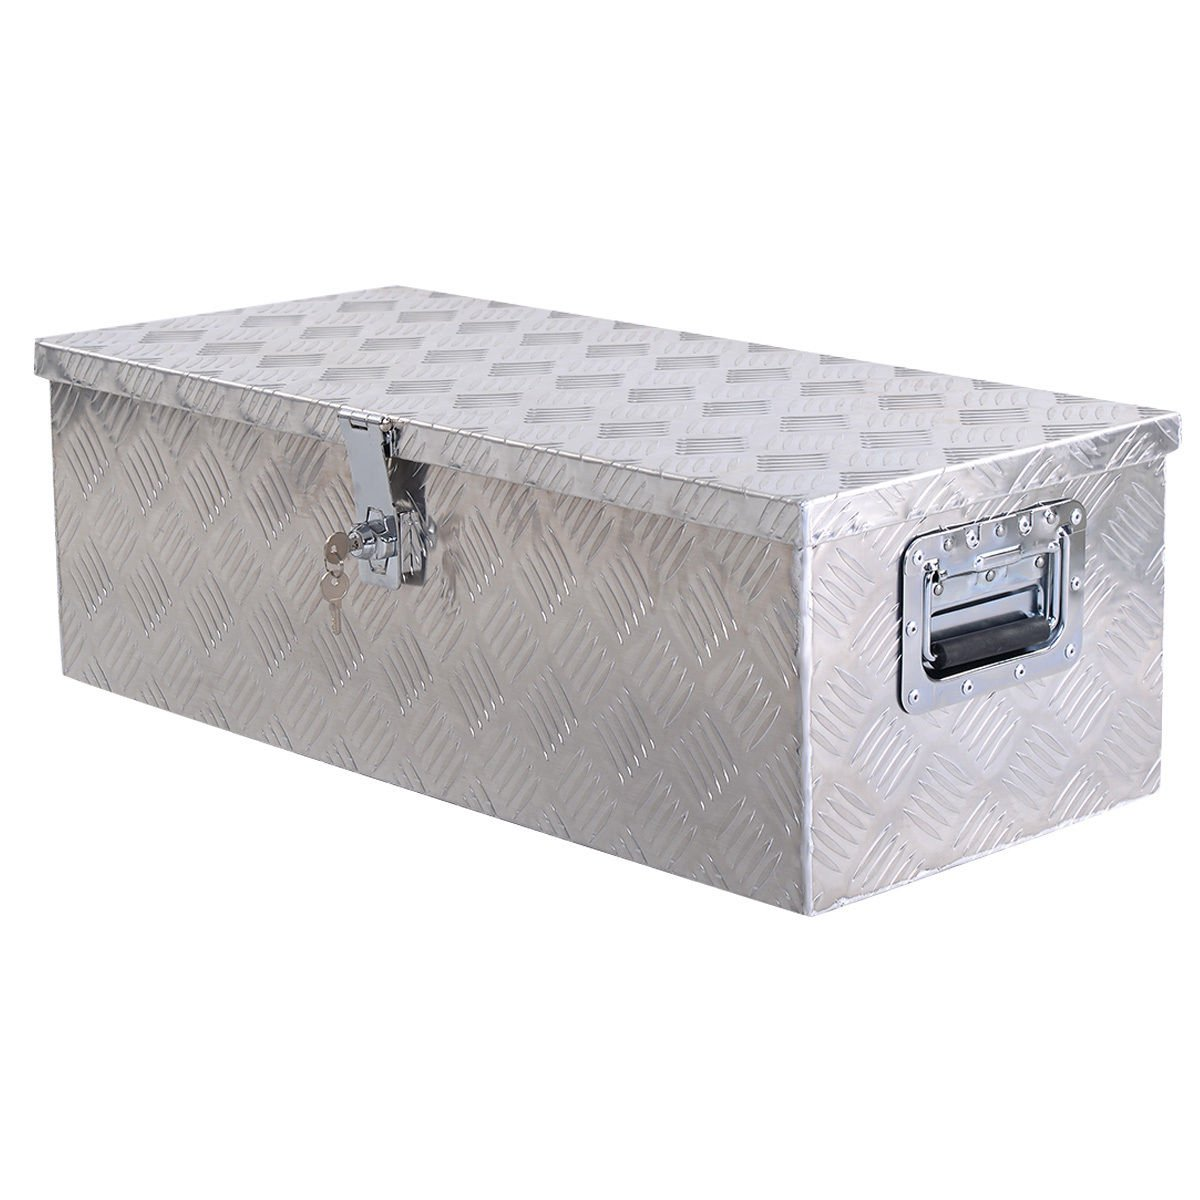 30''L Aluminum Truck Pickup Bed Trailer ATV Tongue Lockable Tool Box W/ Lock. by happybeamy